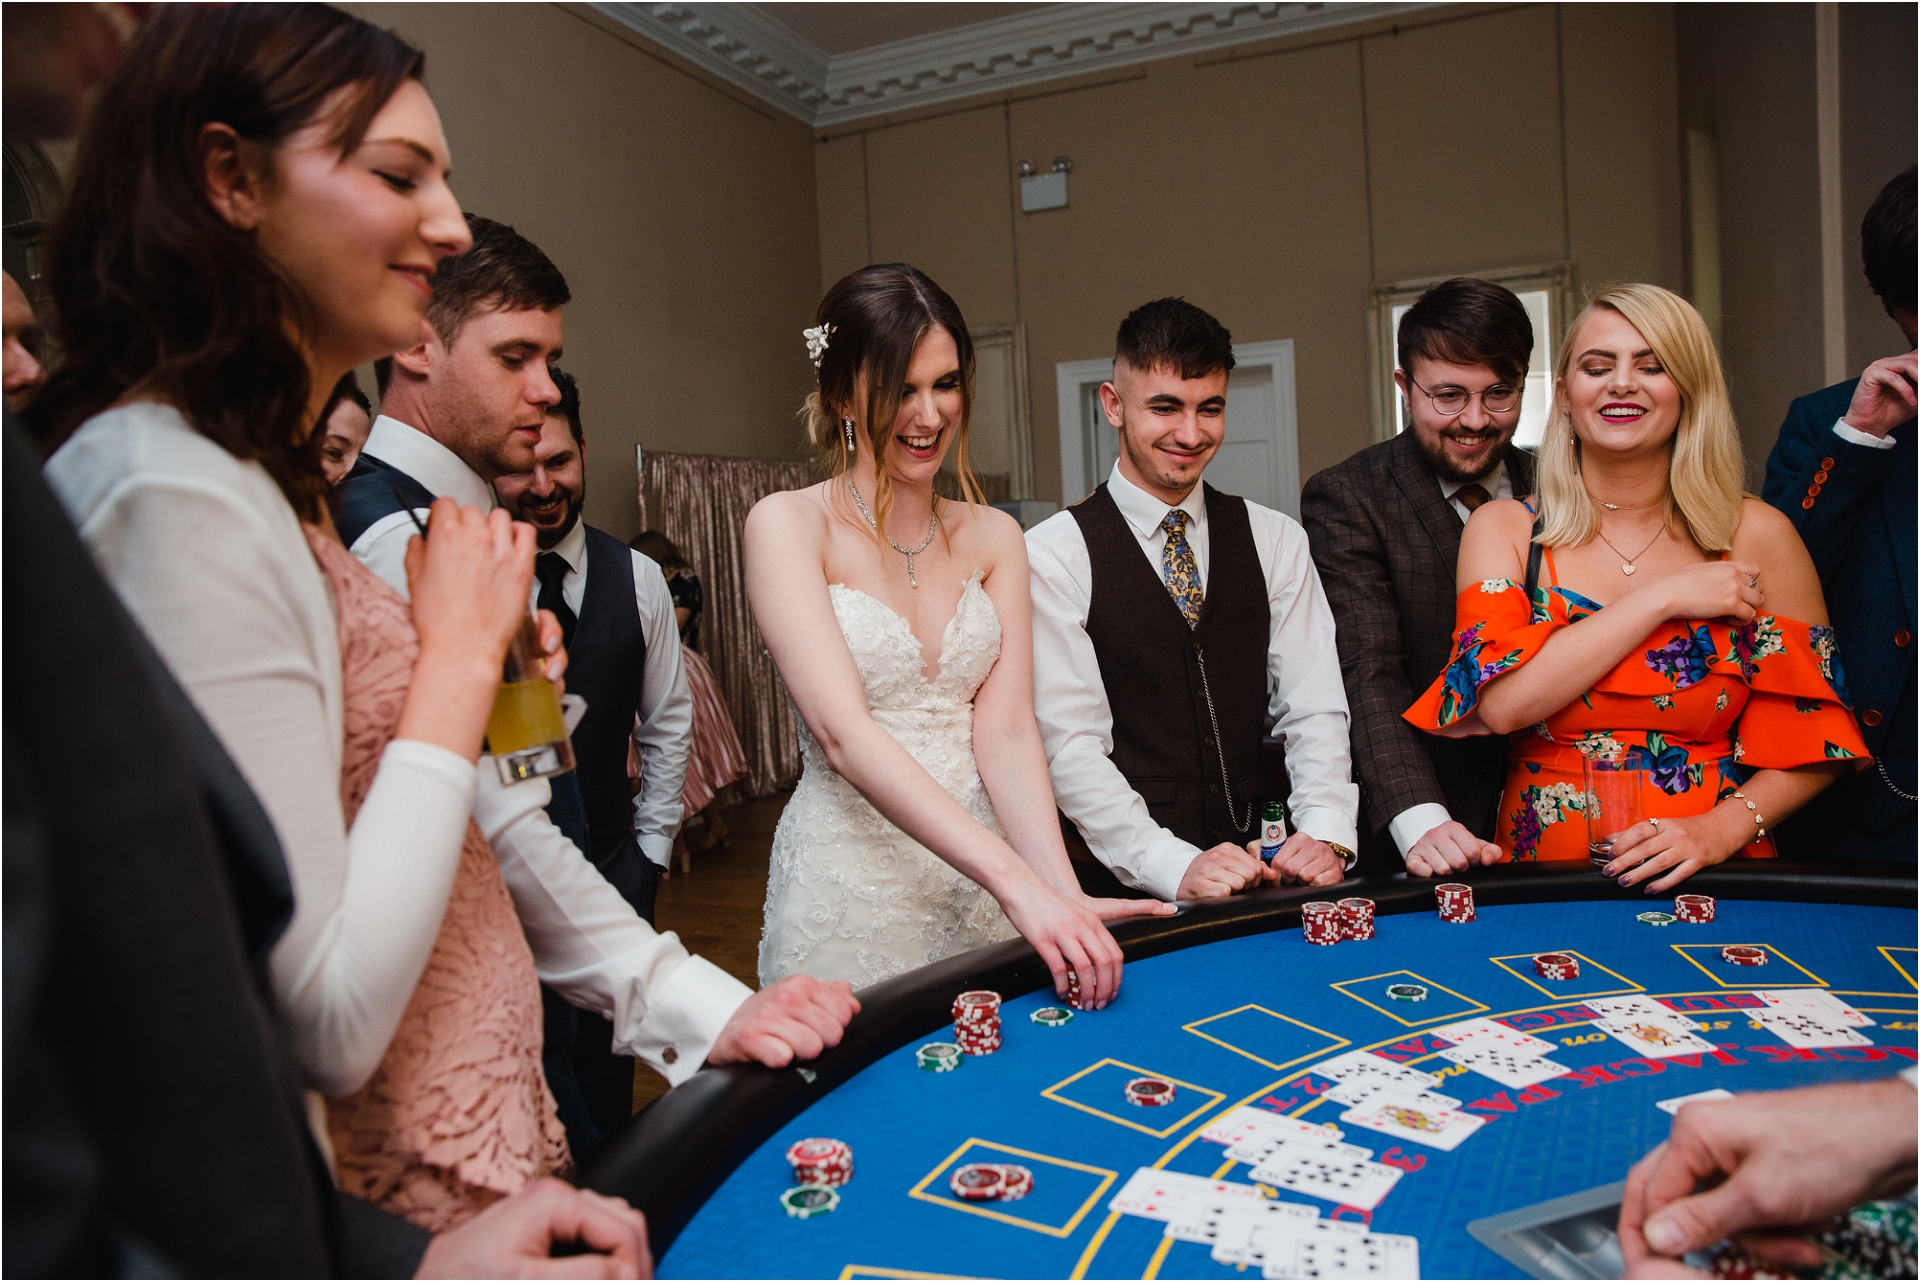 Wedding night casino